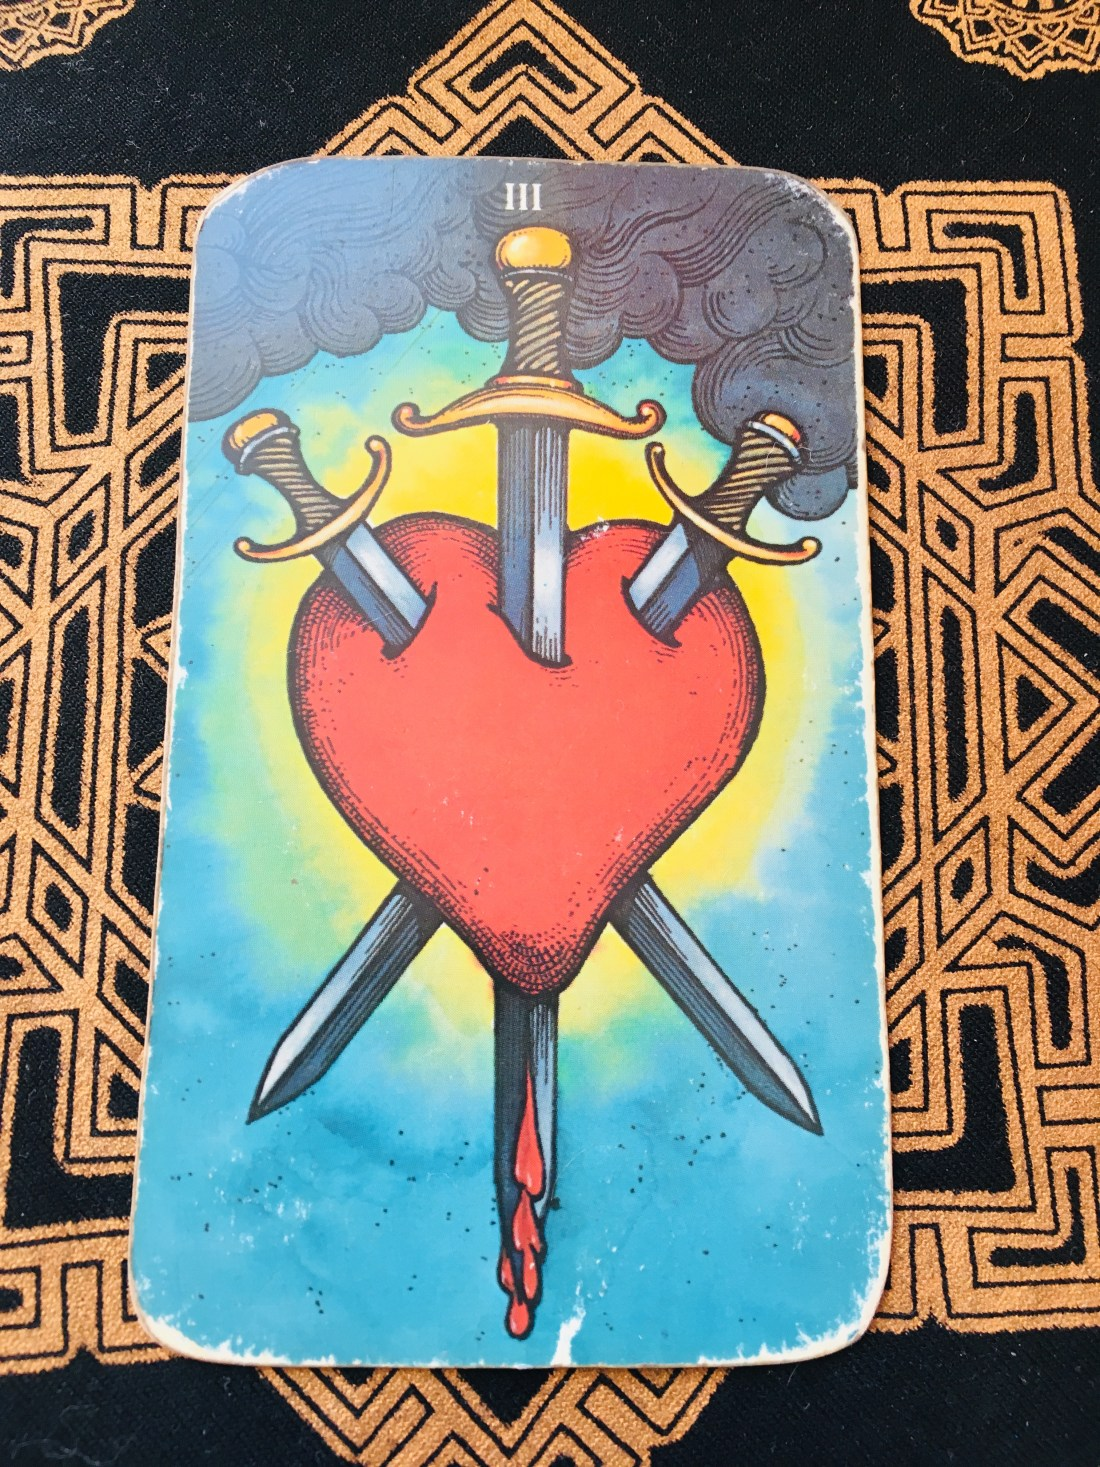 Three of Swords, Tarot card, heal wounds.